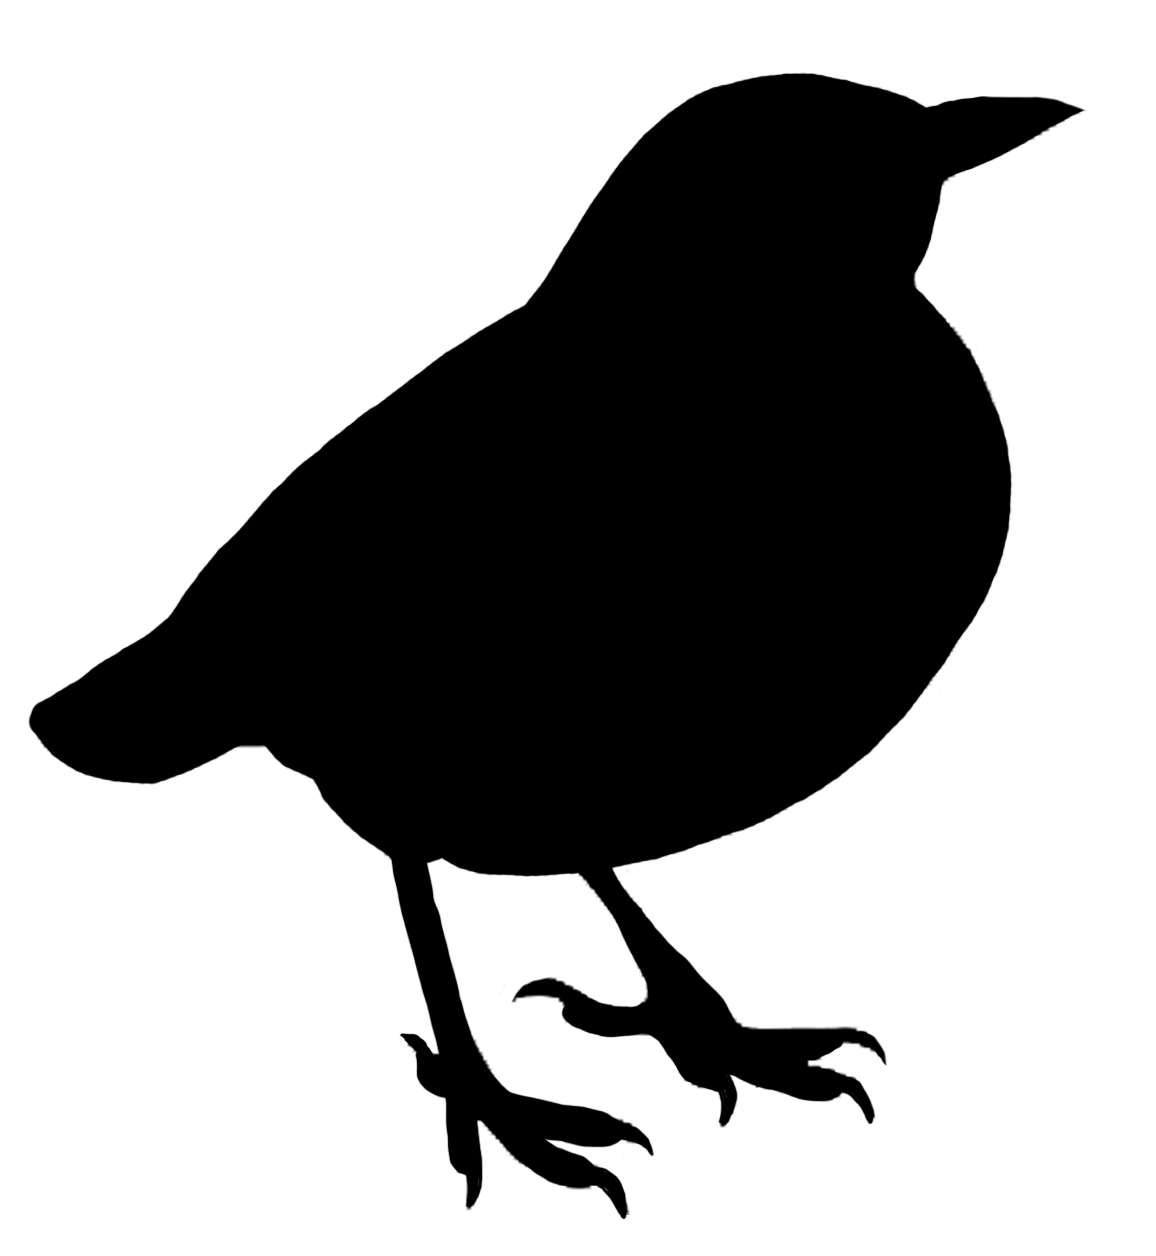 Silhouettes png images stickpng. Bird clip art transparent background jpg black and white library